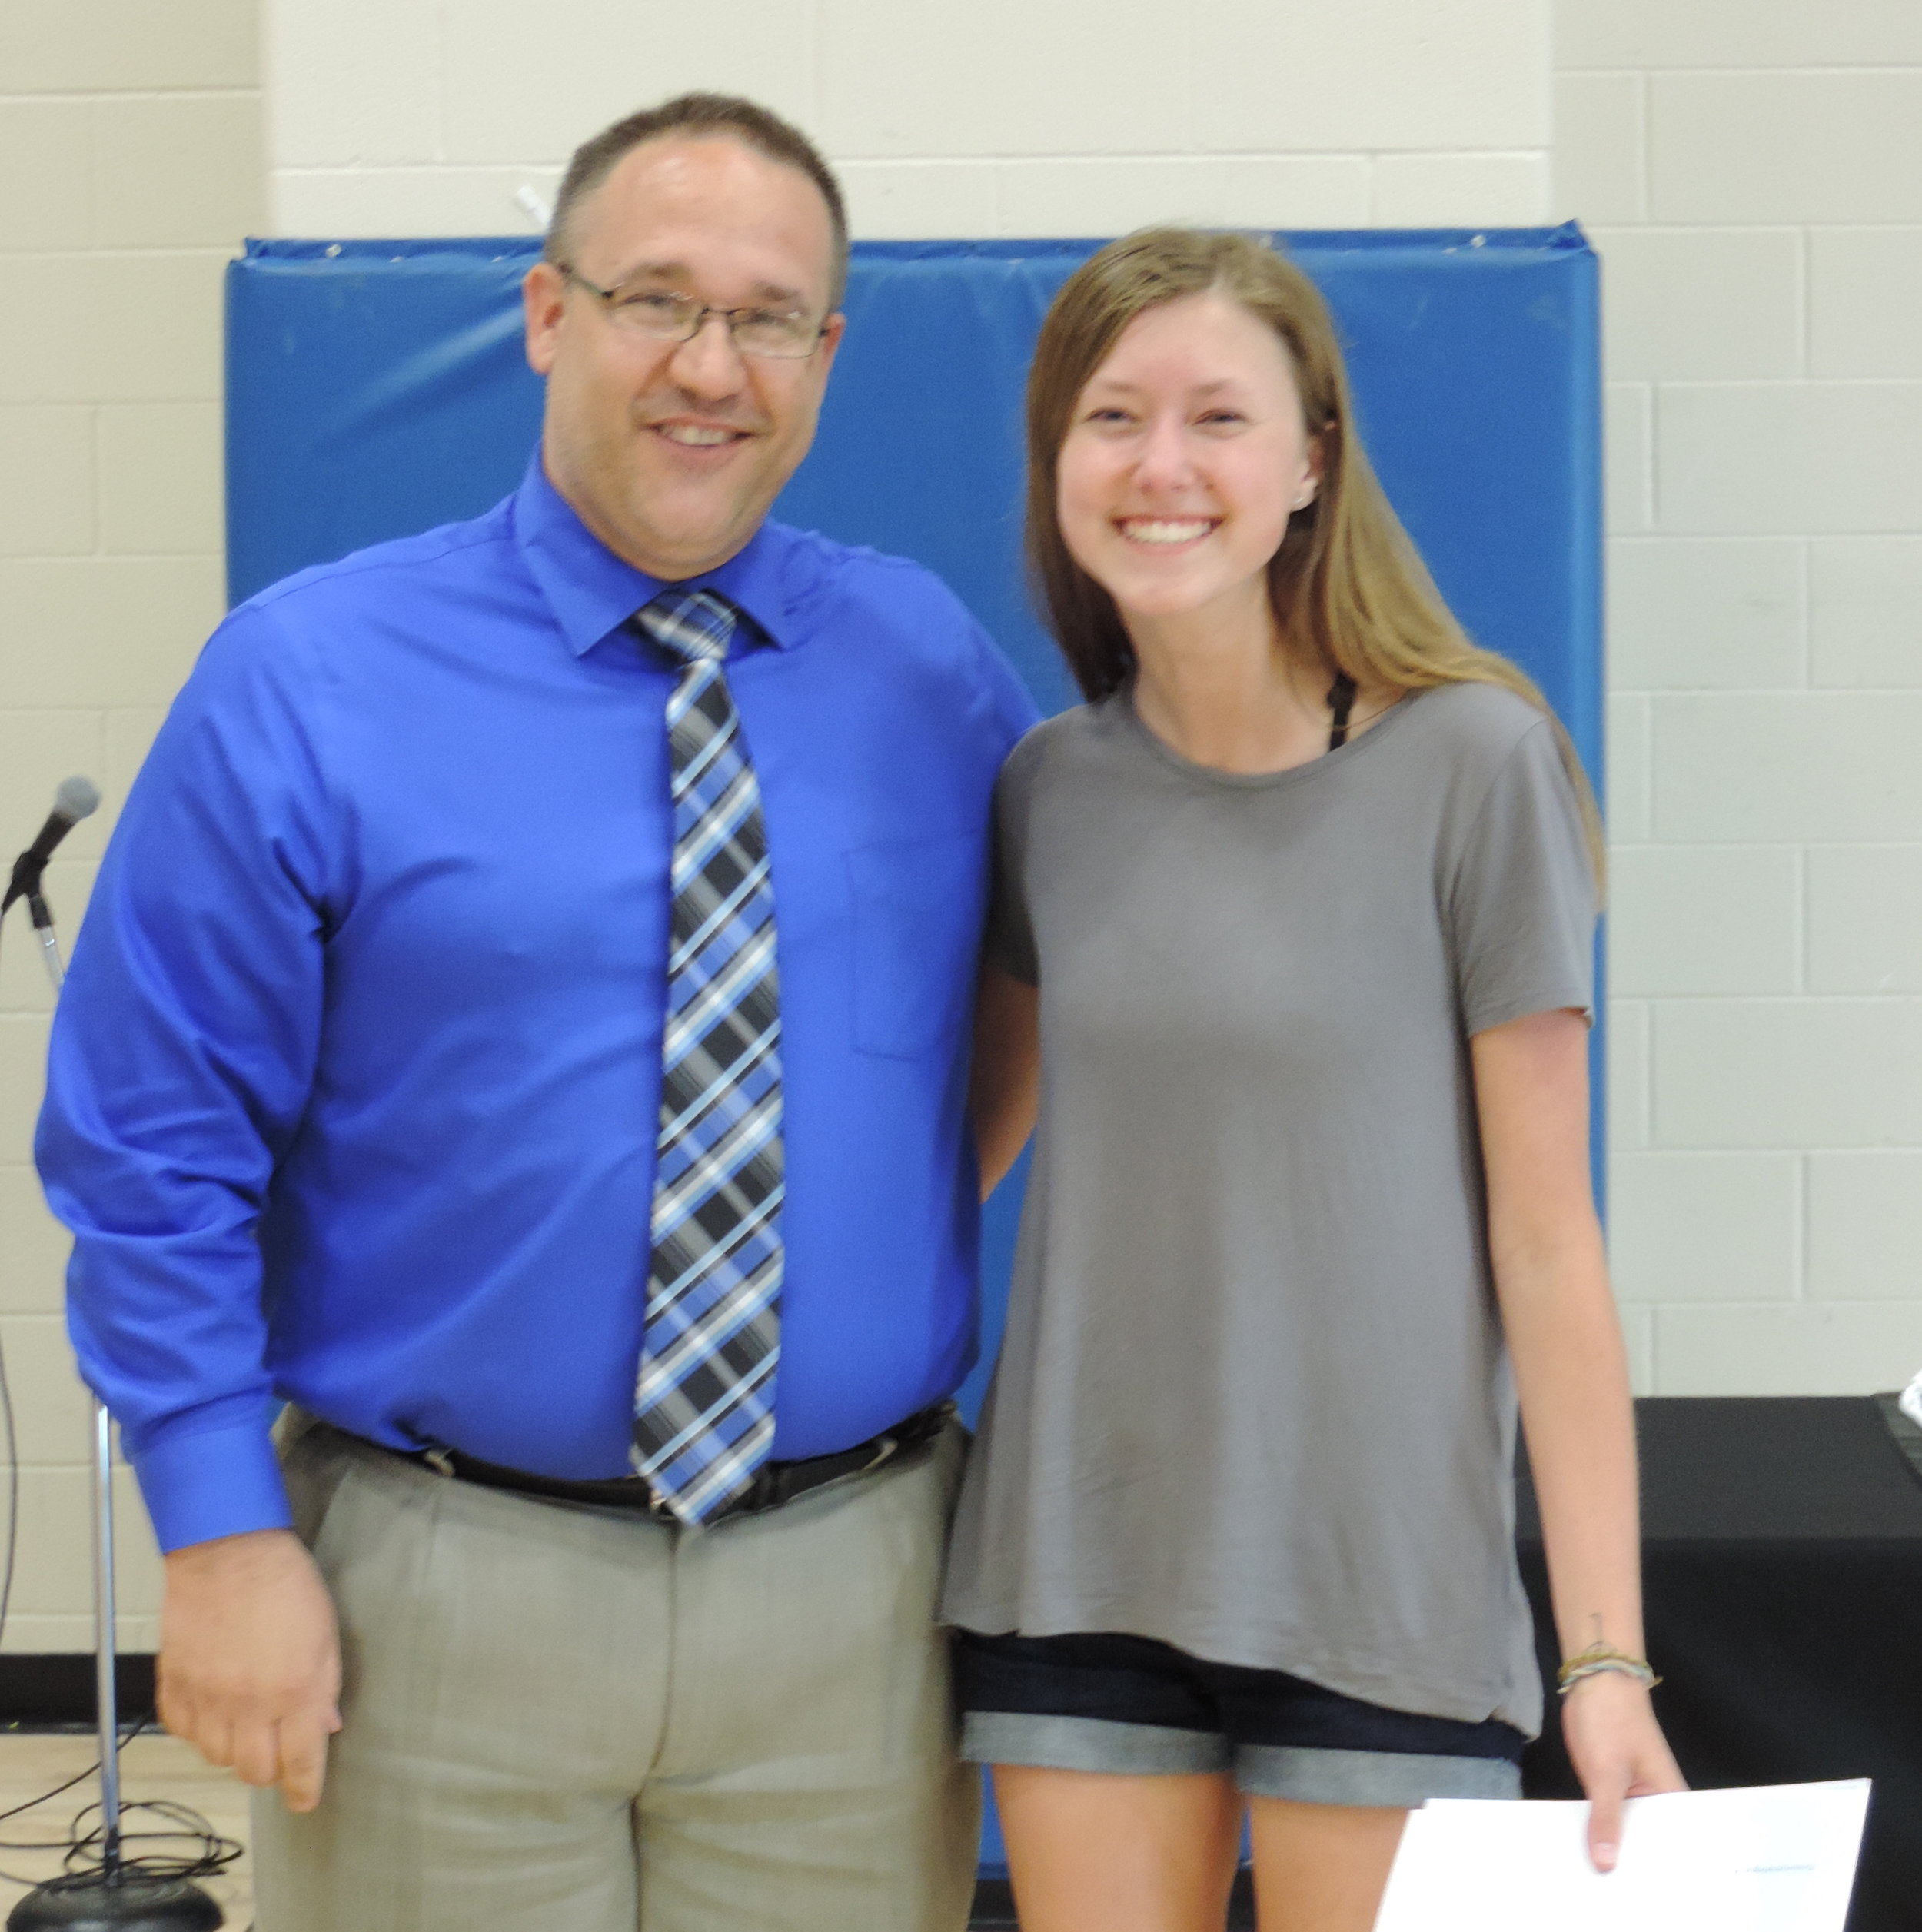 - SCA Senior Reagan Lyle, pictured with Secondary Principal and Operations Director Joe Hesman, was recently named as SCA's Secondary Christian Character Student of the Year.